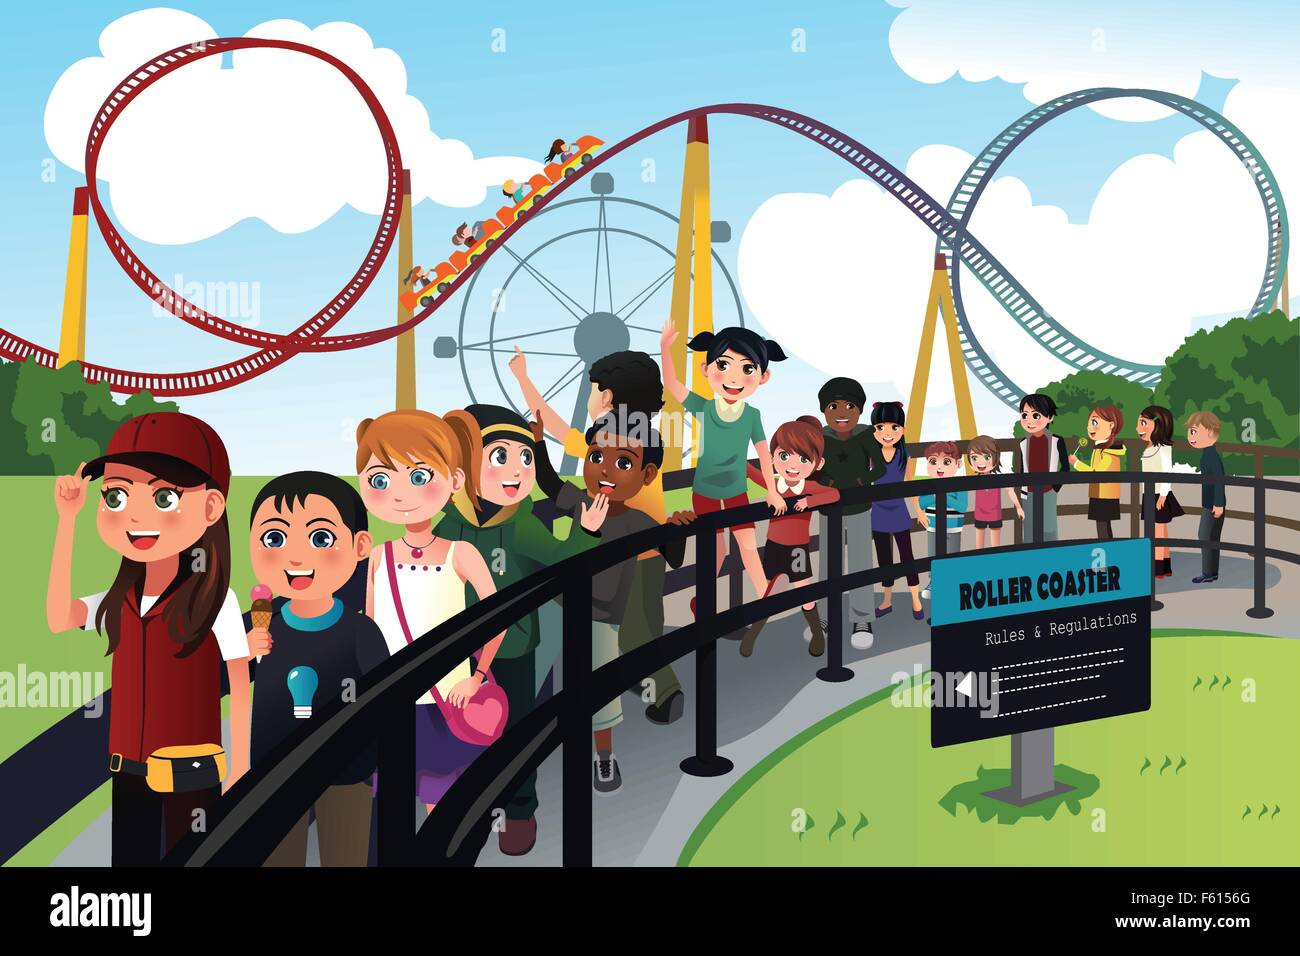 A vector illustration of excited children waiting in line for a roller coaster ride - Stock Vector